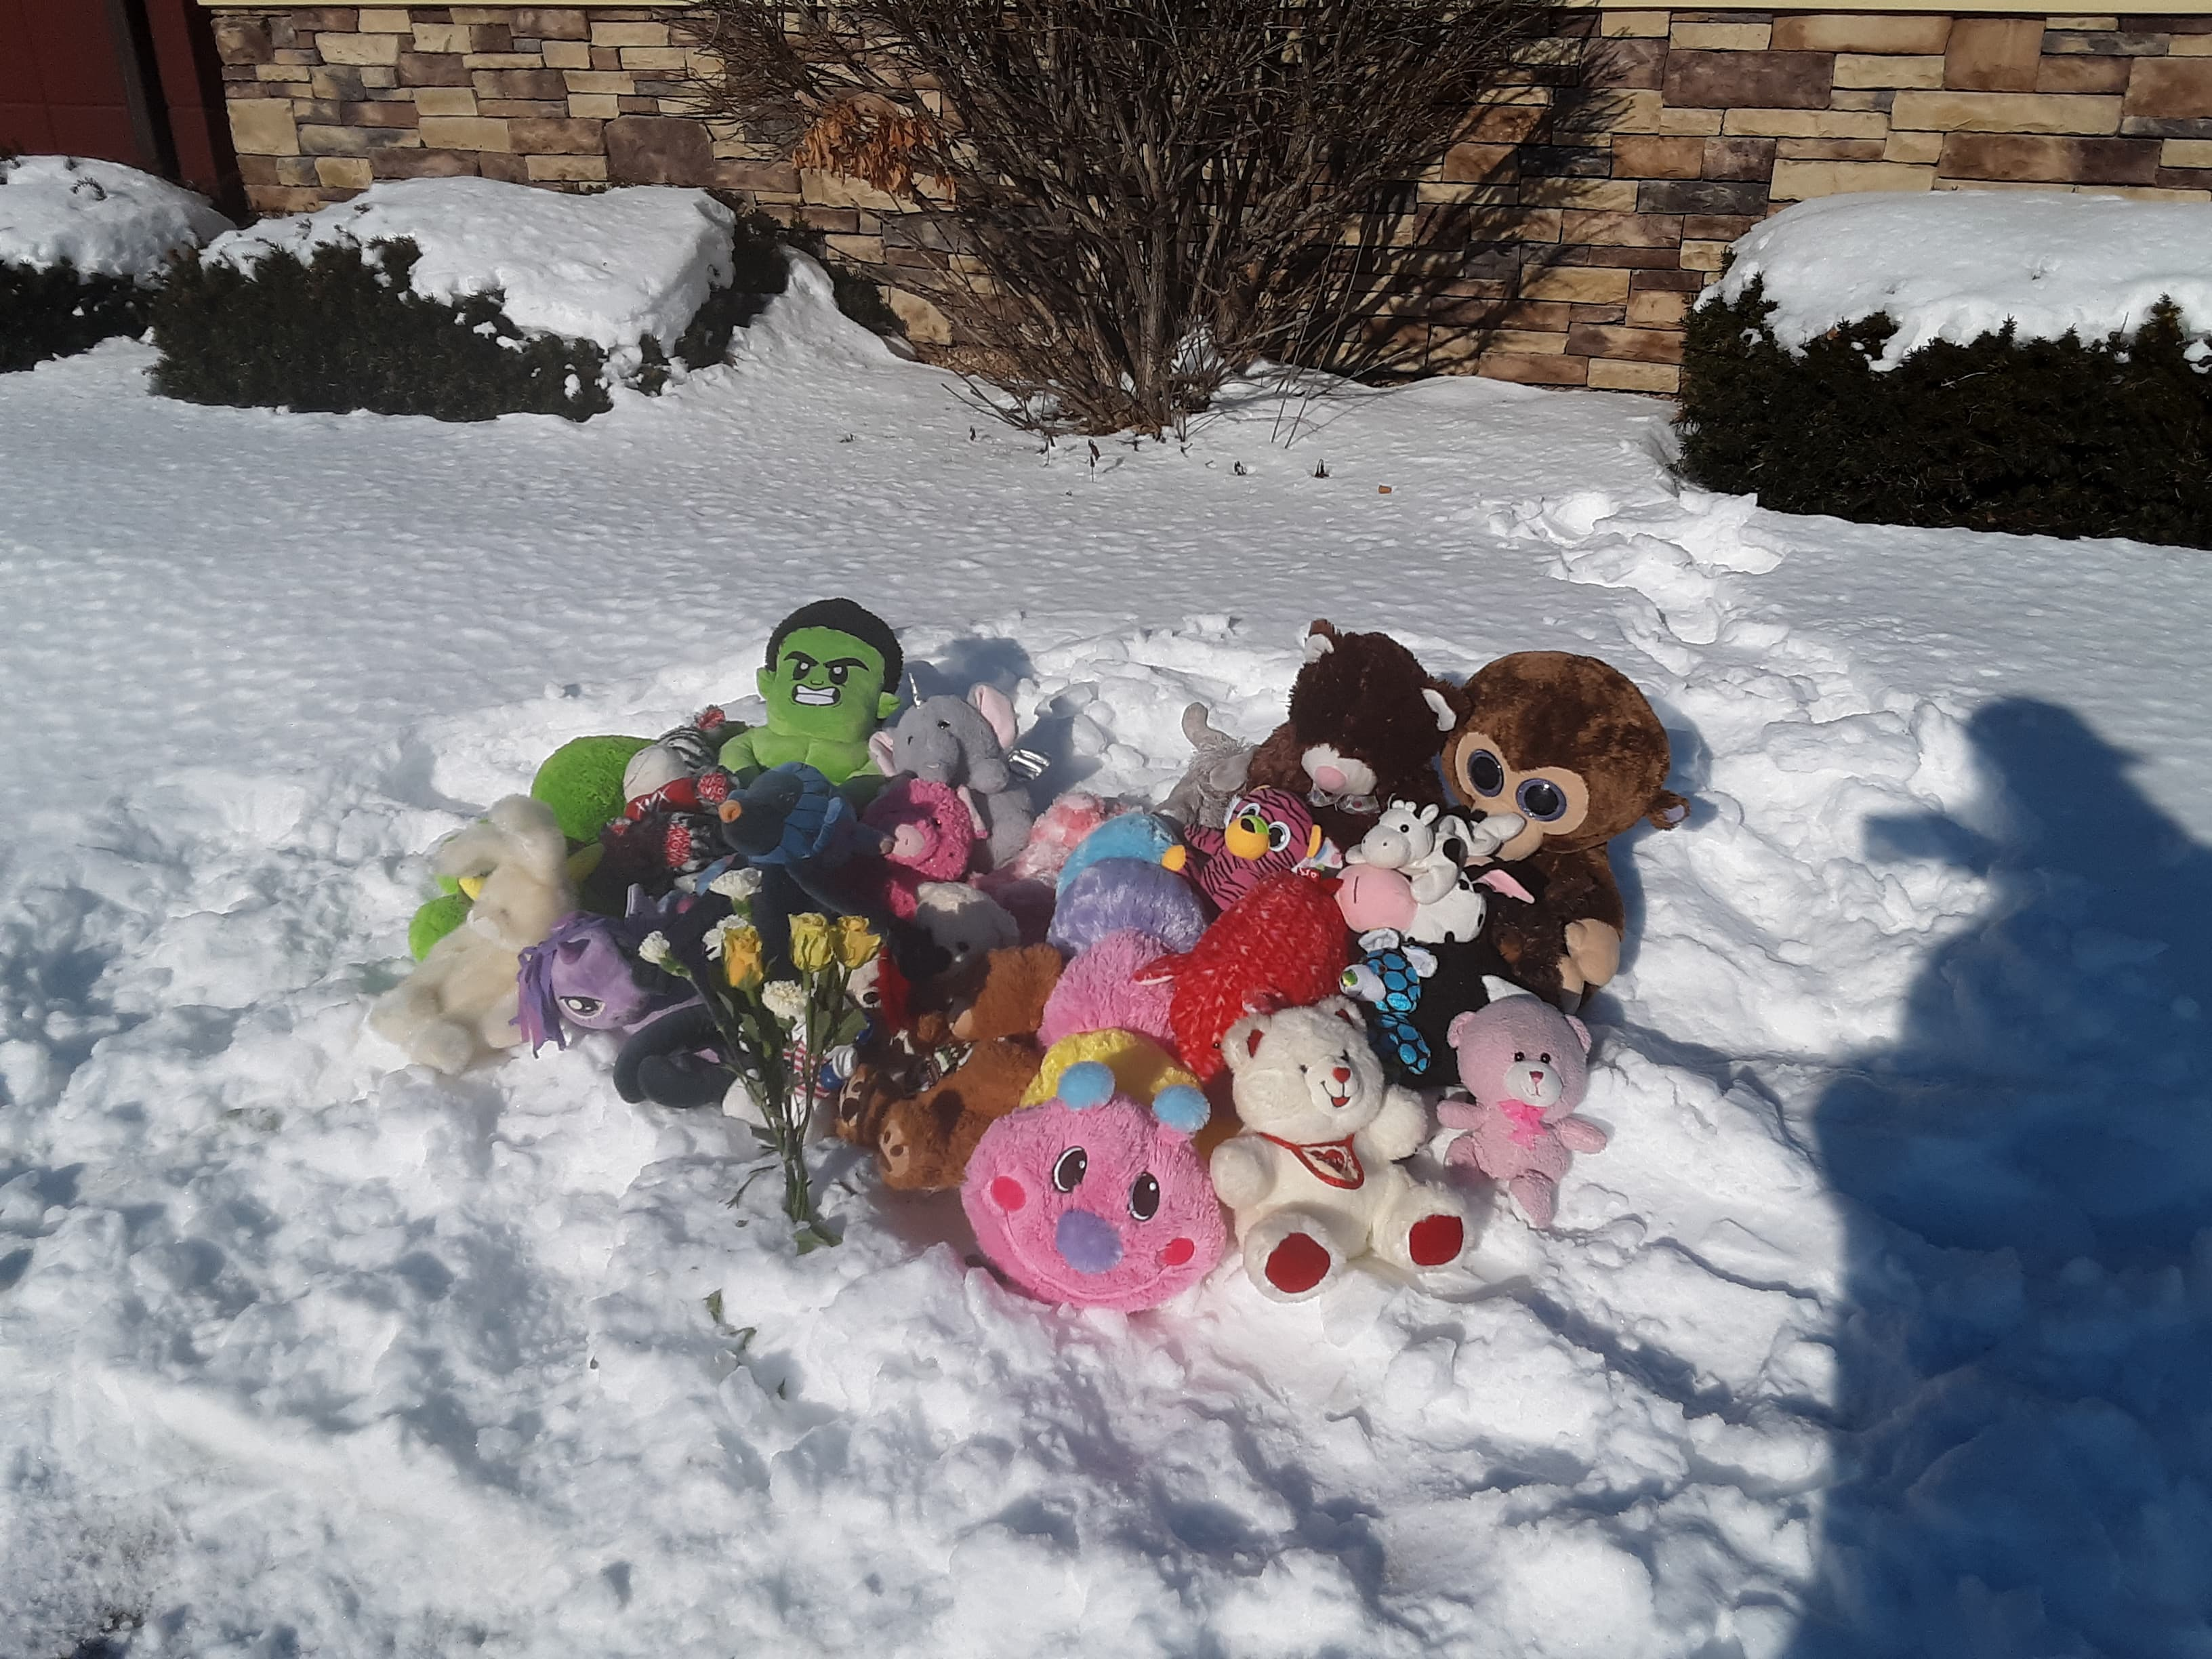 A memorial for William and Danielle Beyer outside of the PIzza Hut in downtown Kaukauna. Tanya Zehren photo